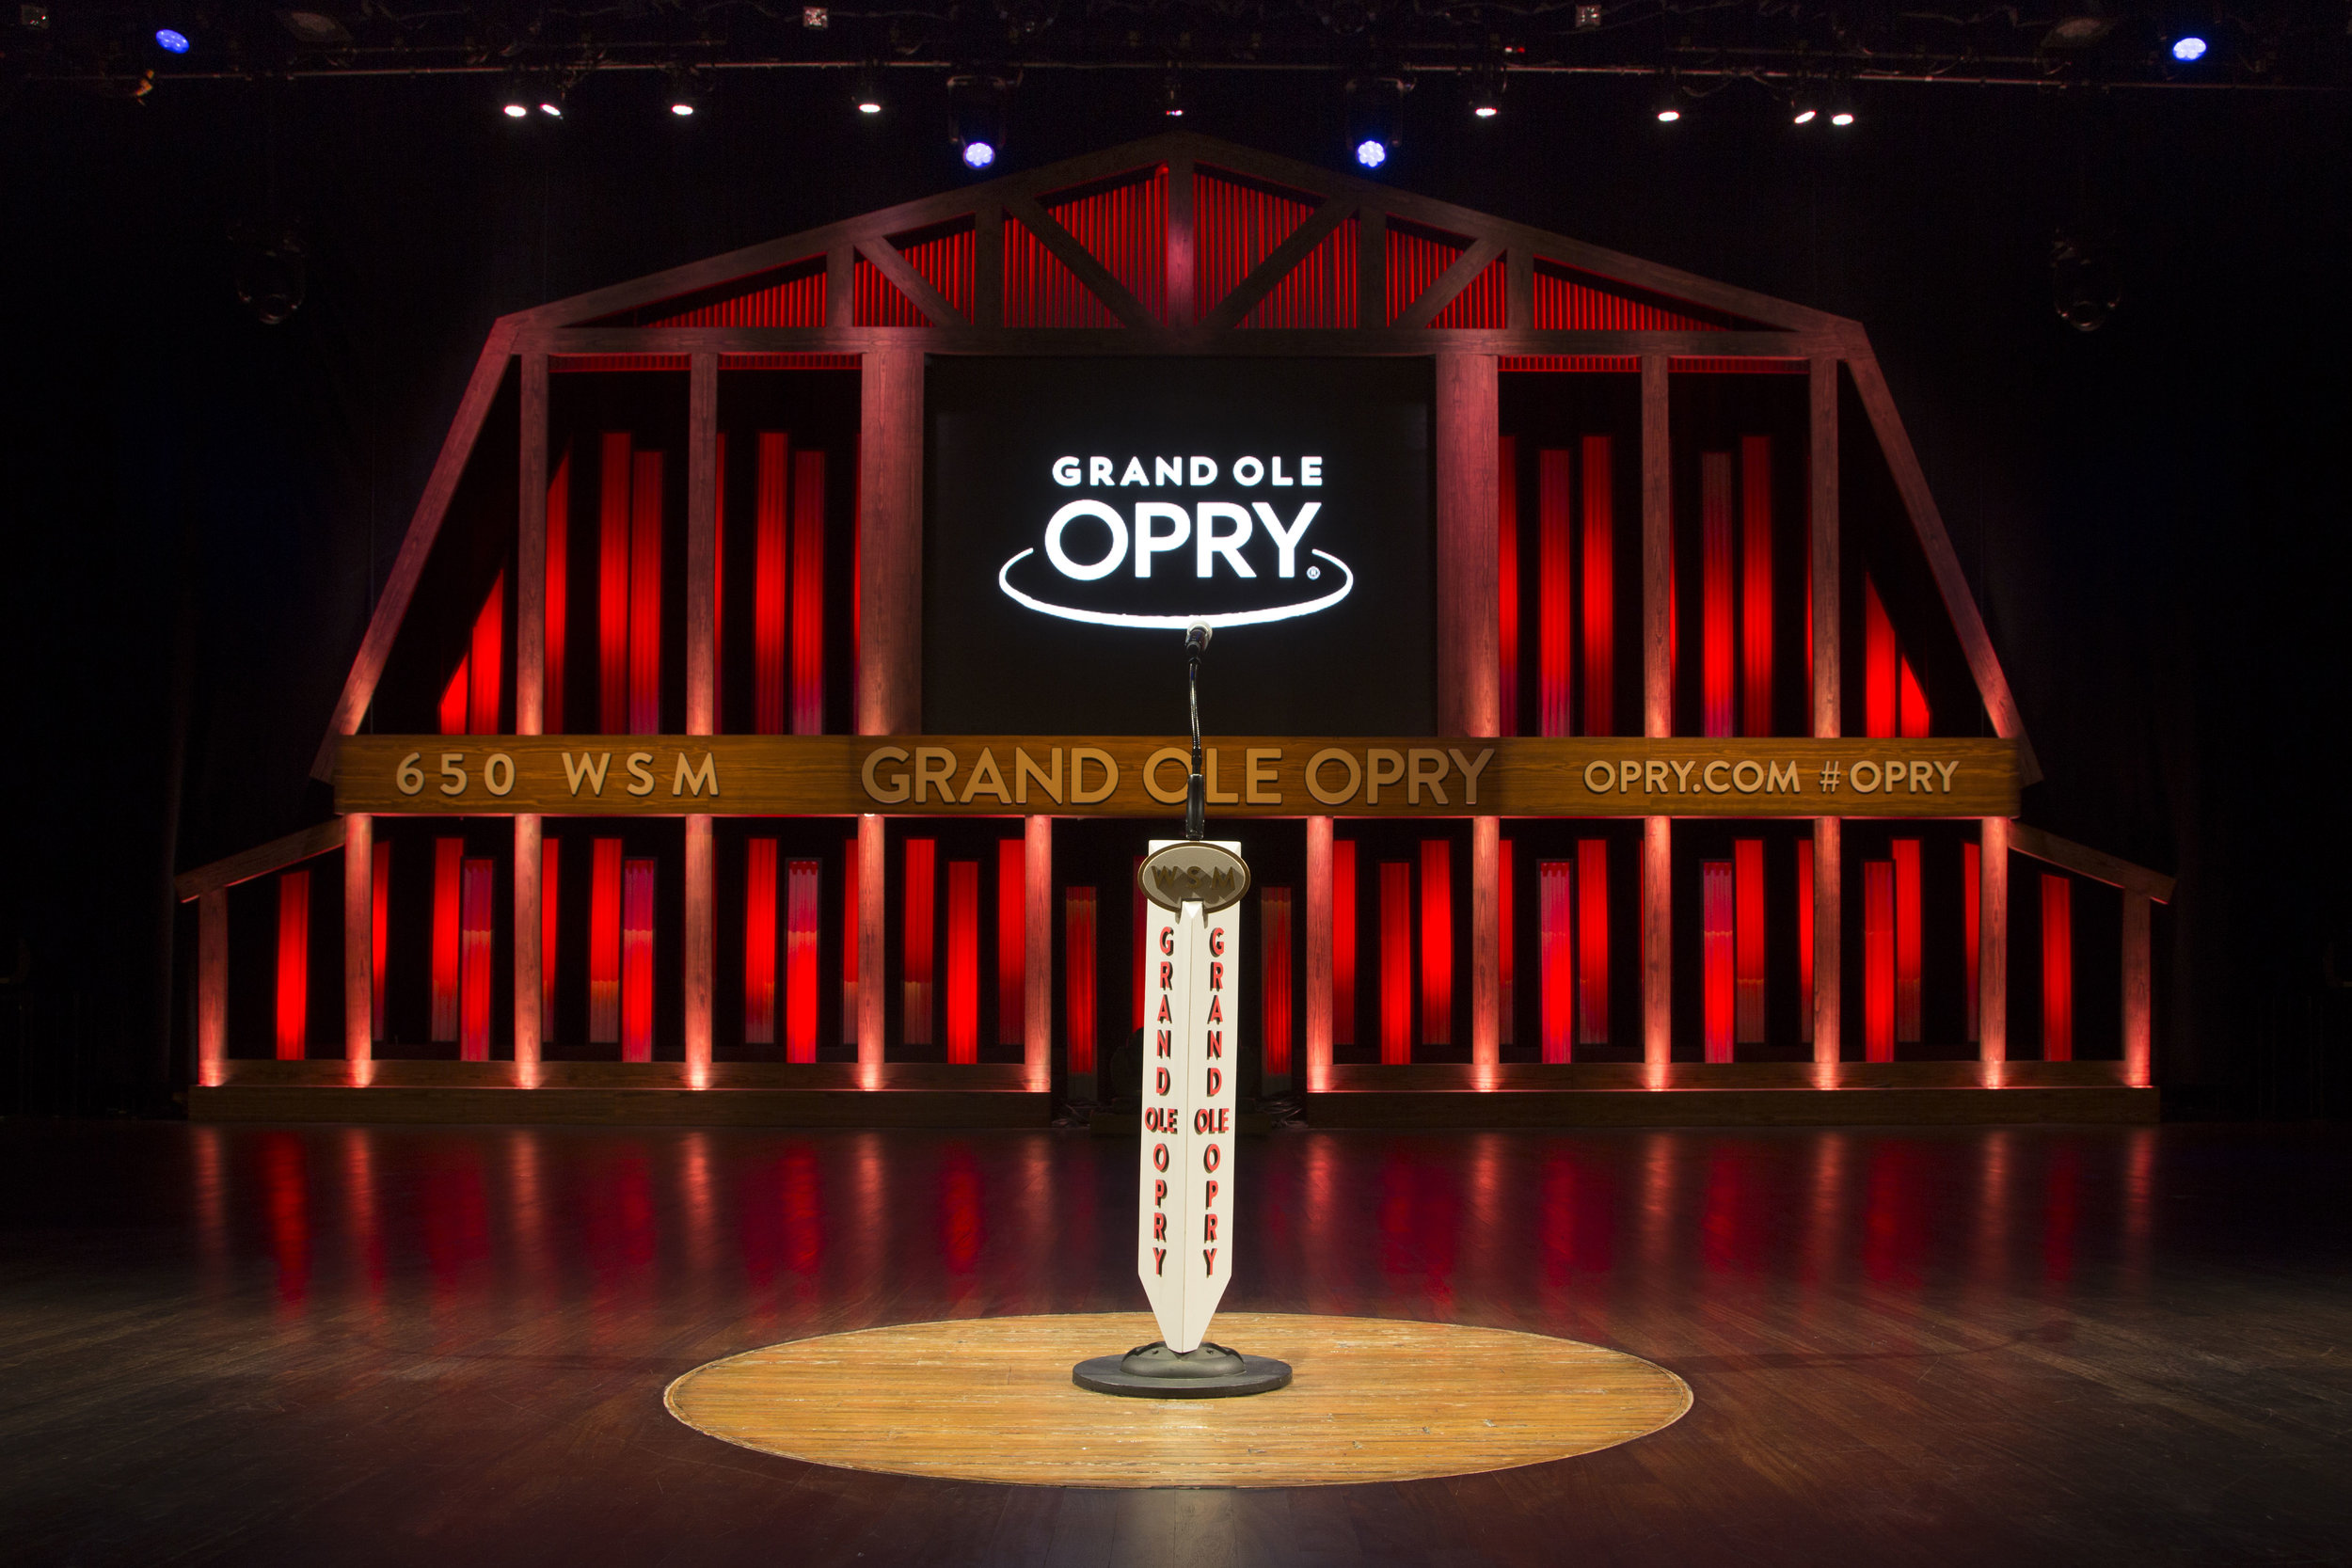 opry-press-file-GOO-redstage.jpg